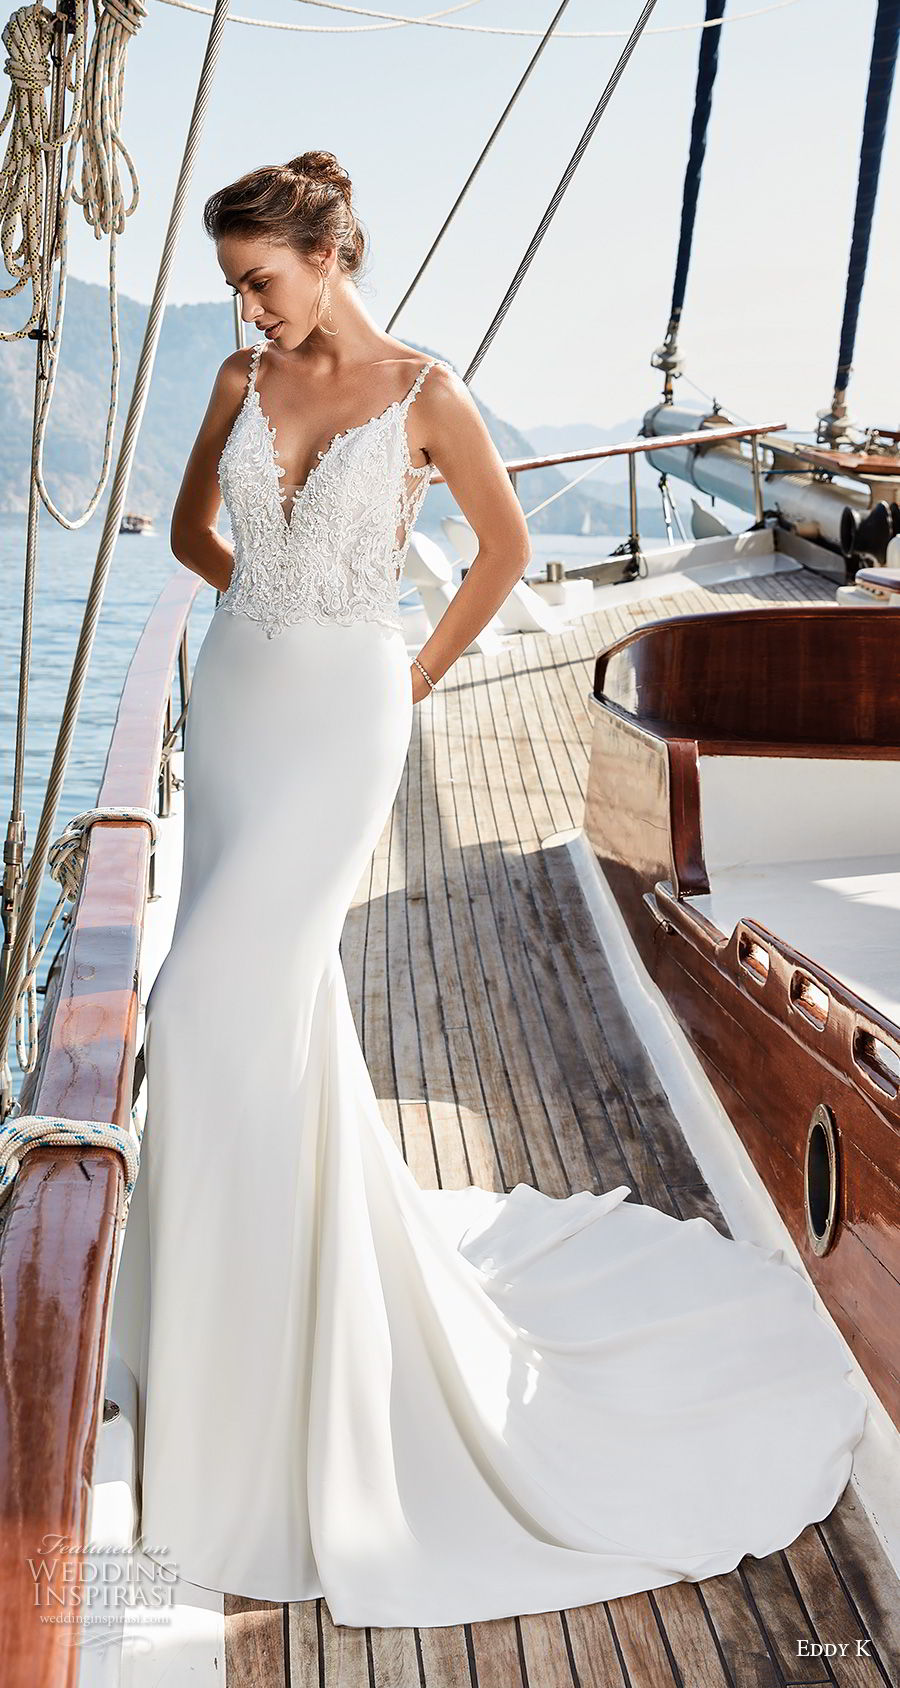 eddy k 2018 bridal sleeveless thin strap v neck heavily embellished bodice elegant sheath wedding dress open back sweep train (31) mv